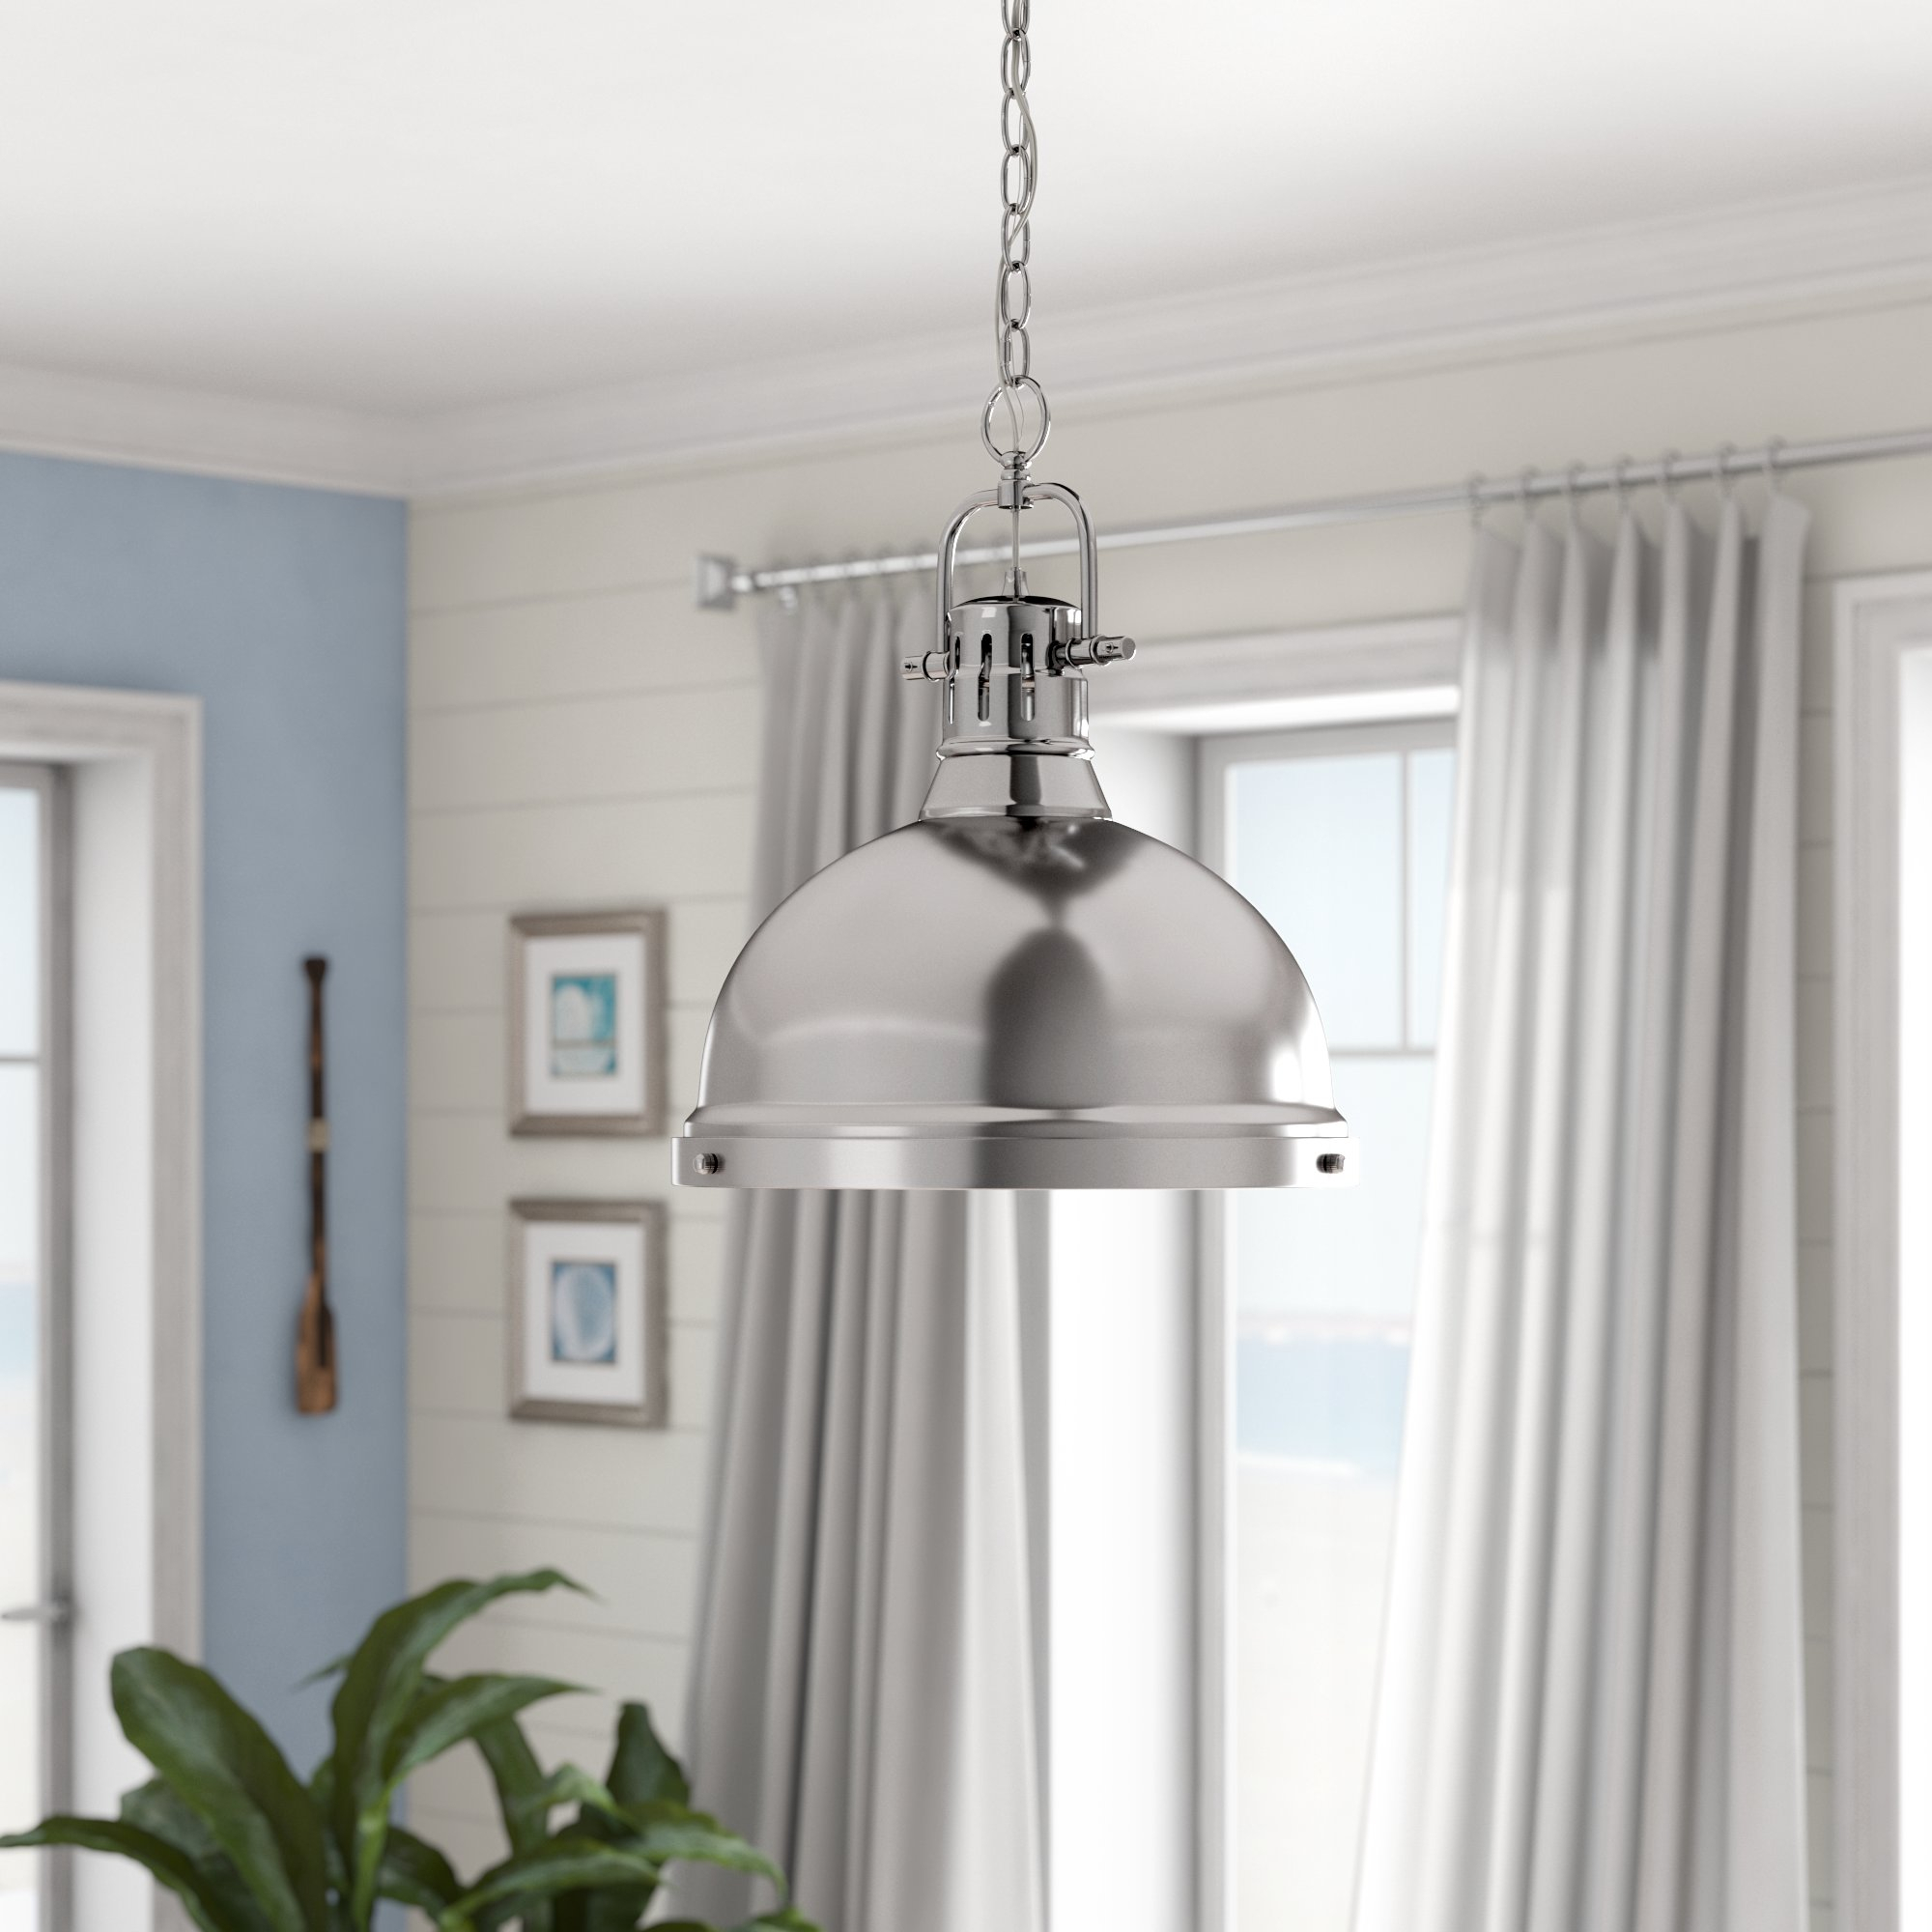 Bodalla 1 Light Single Dome Pendant Intended For Freeda 1 Light Single Dome Pendants (View 12 of 30)